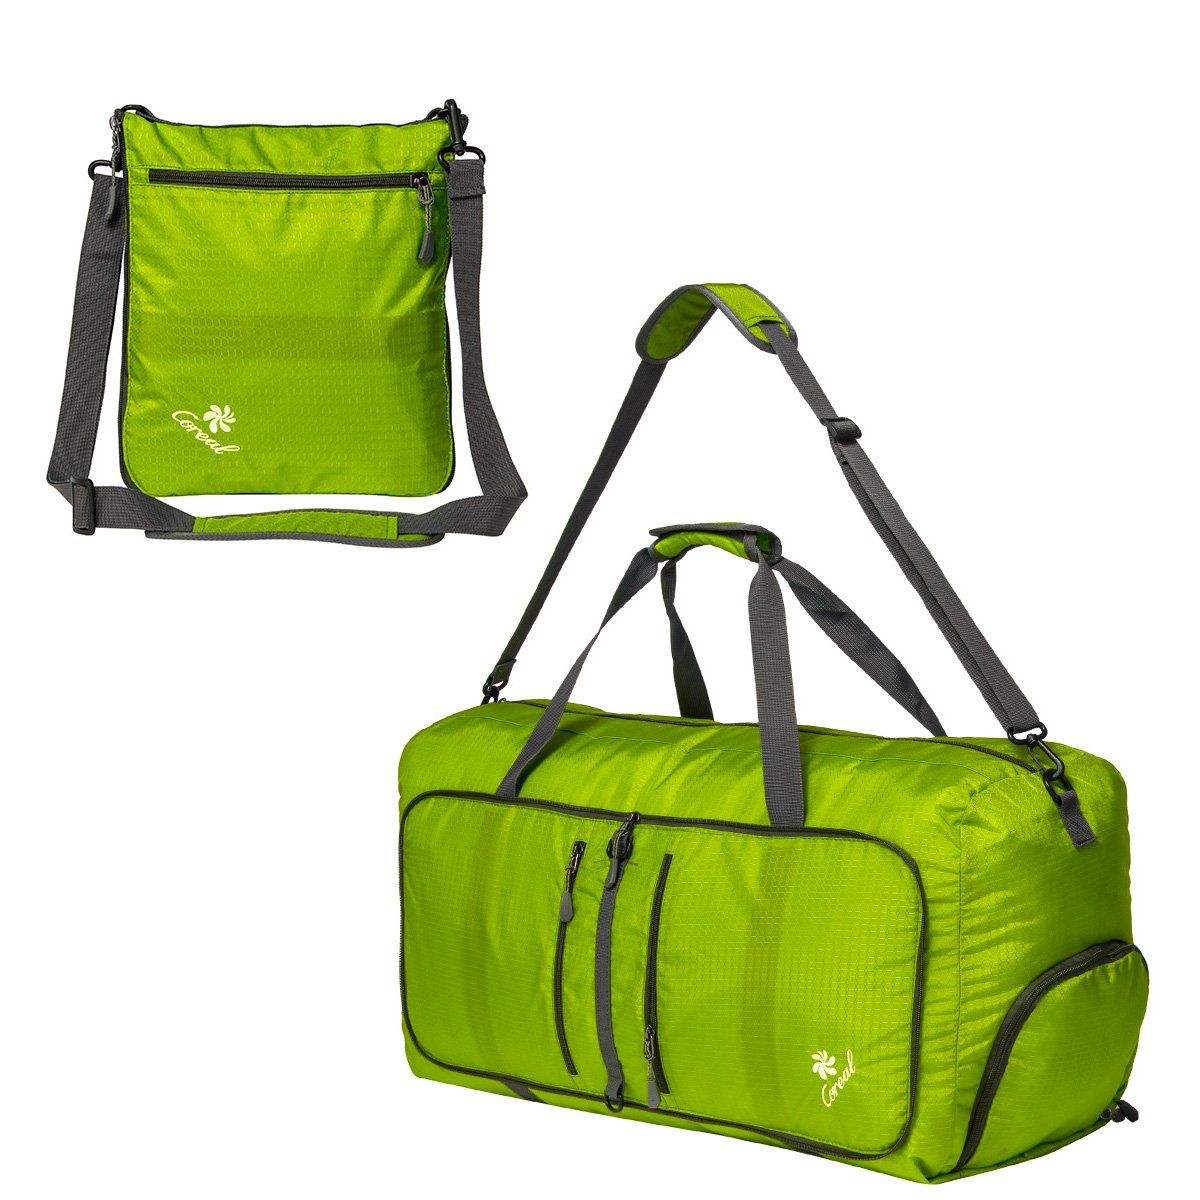 ce8c6d78feb3 Coreal 80L Foldable Travel Camping Duffle Luggage Bag with Shoe Compartment  Fluorescent Gree  Amazon.ca  Sports   Outdoors